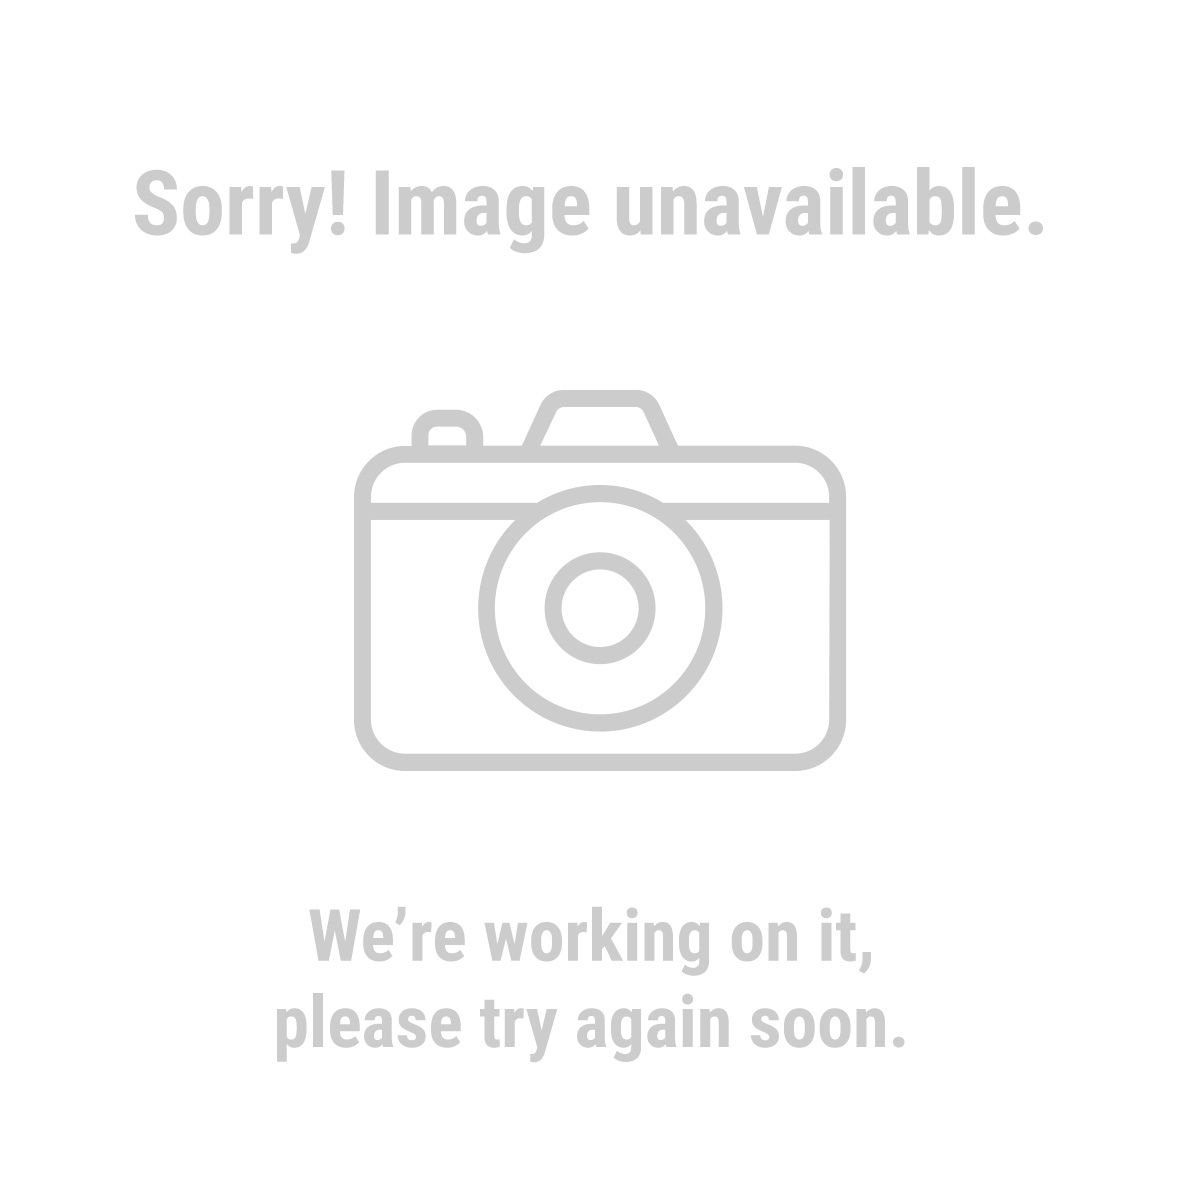 U.S. General Pro 69397 Tool Cart, Five Drawer, 700 lbs. Capacity